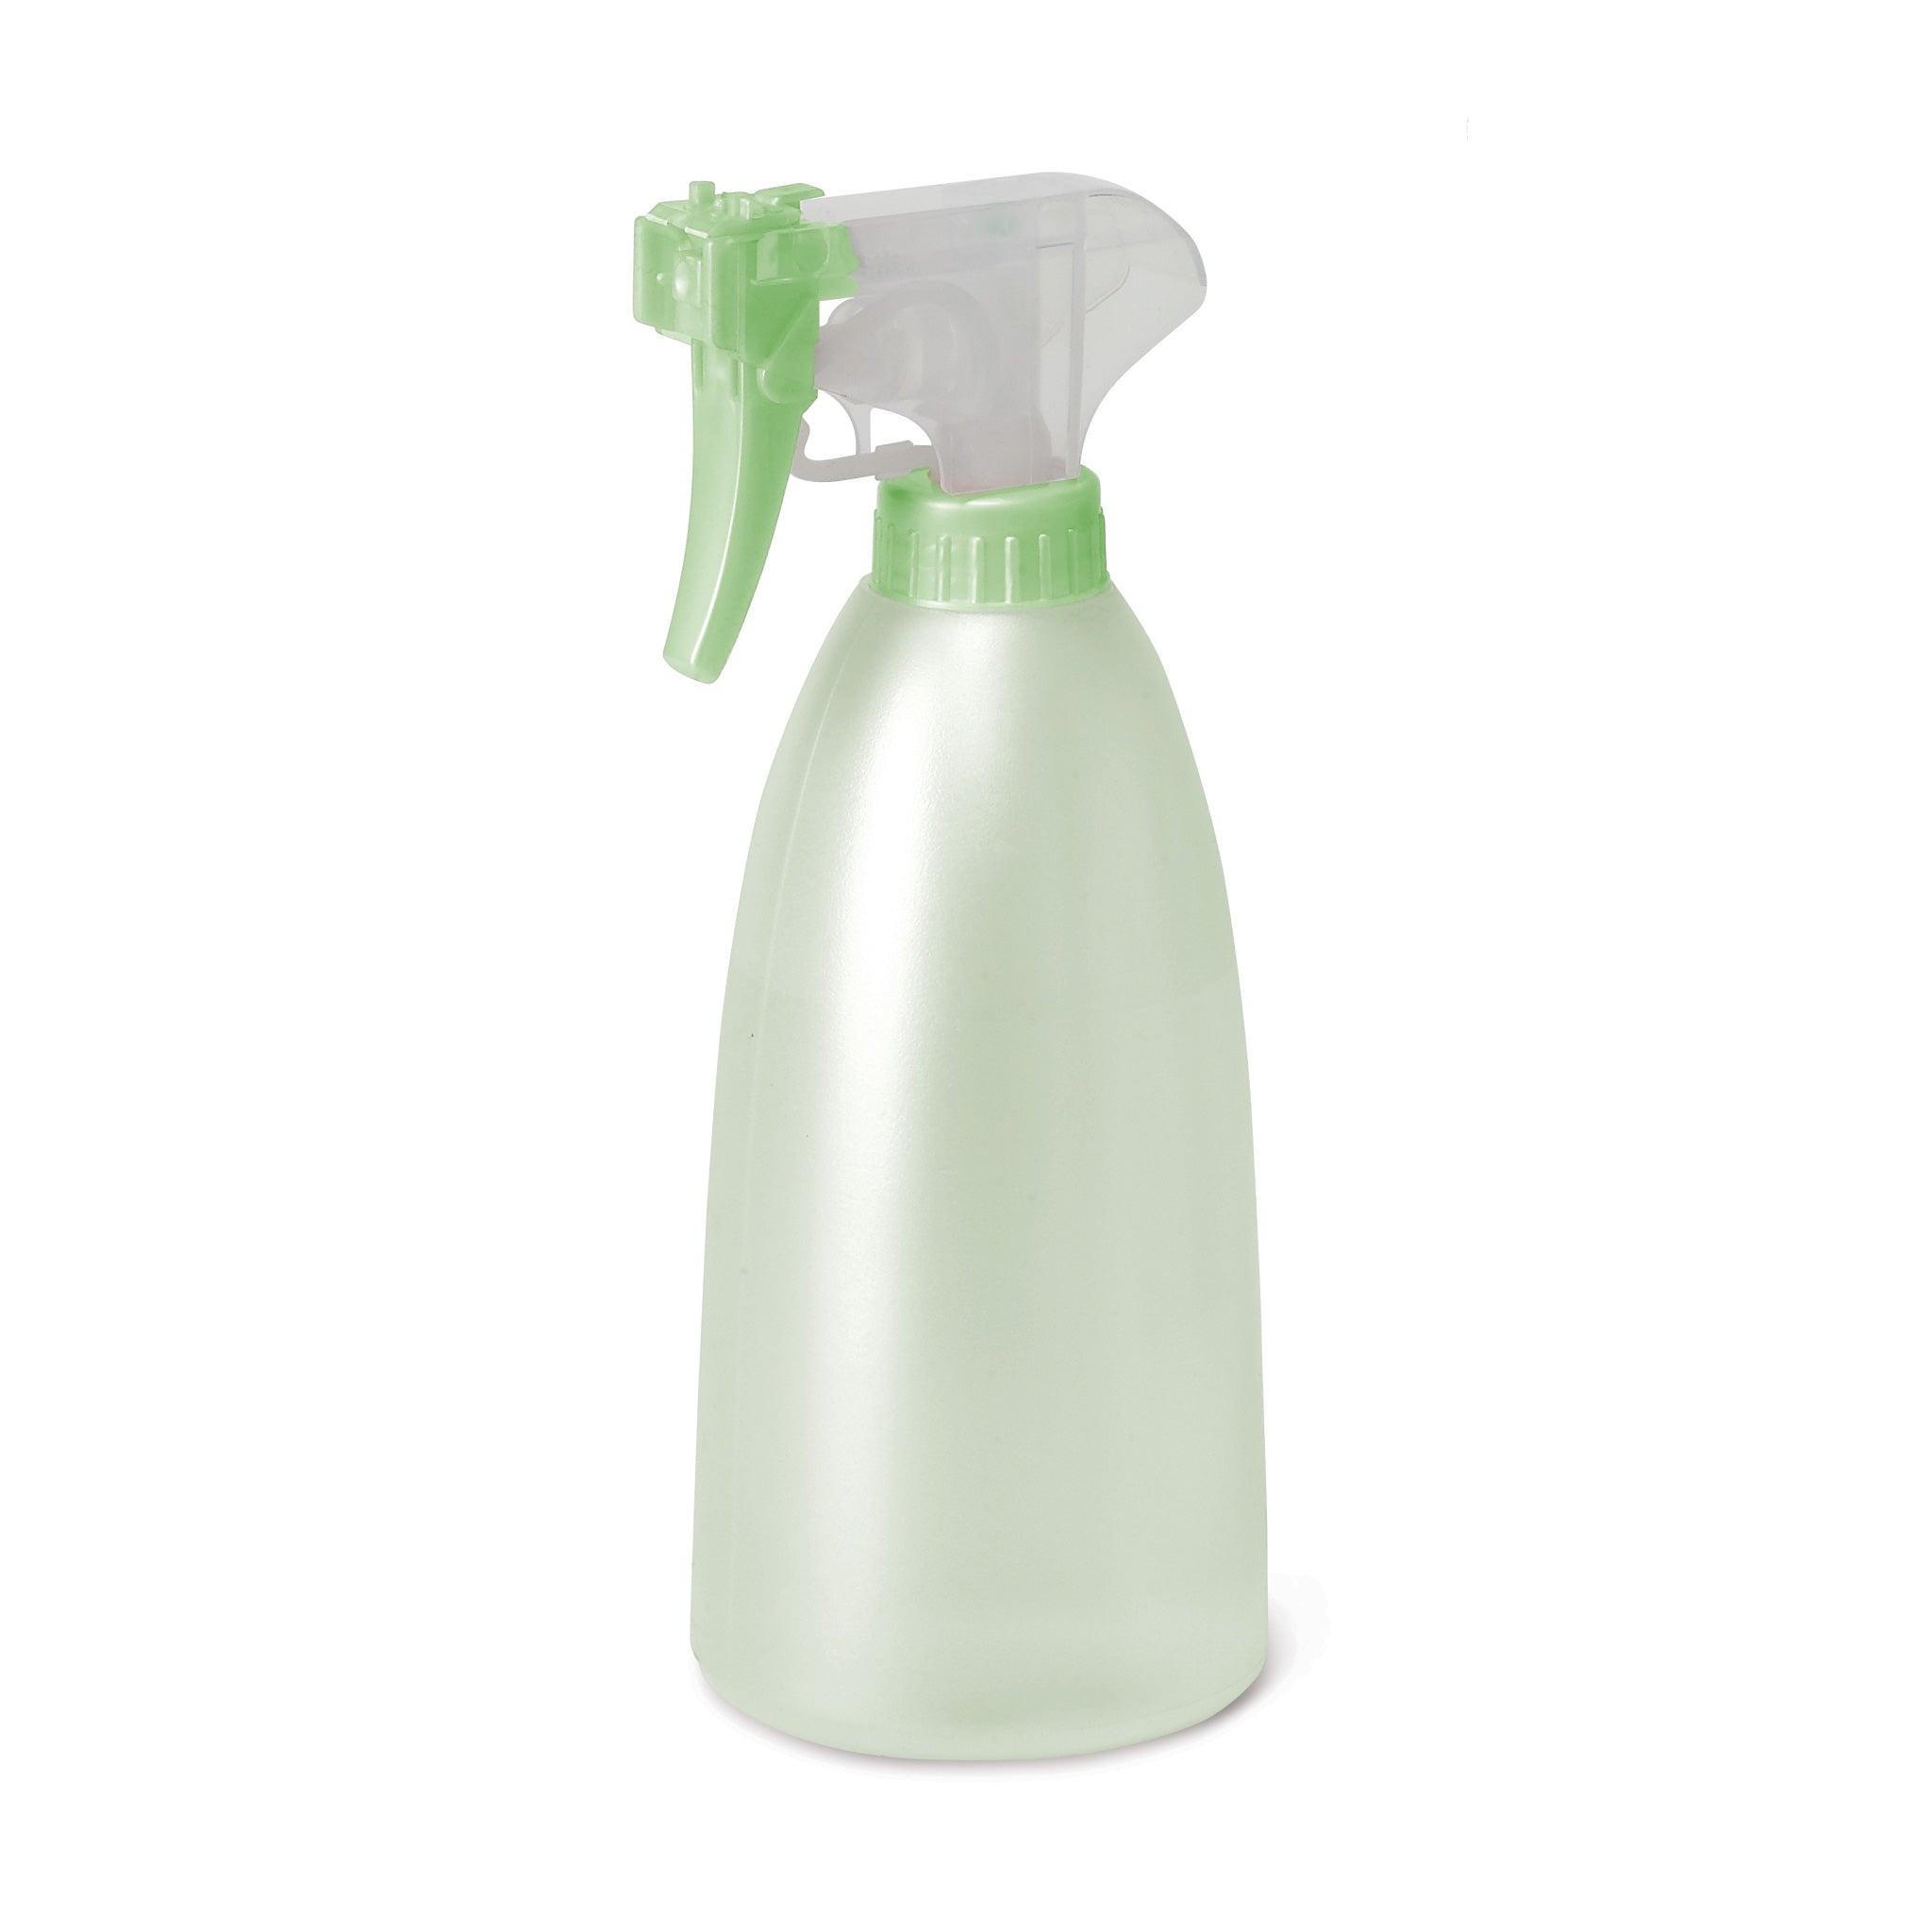 Sproutman's® Soil-Free Wheatgrass Grower SM-350 - Spray Bottle - Tribest